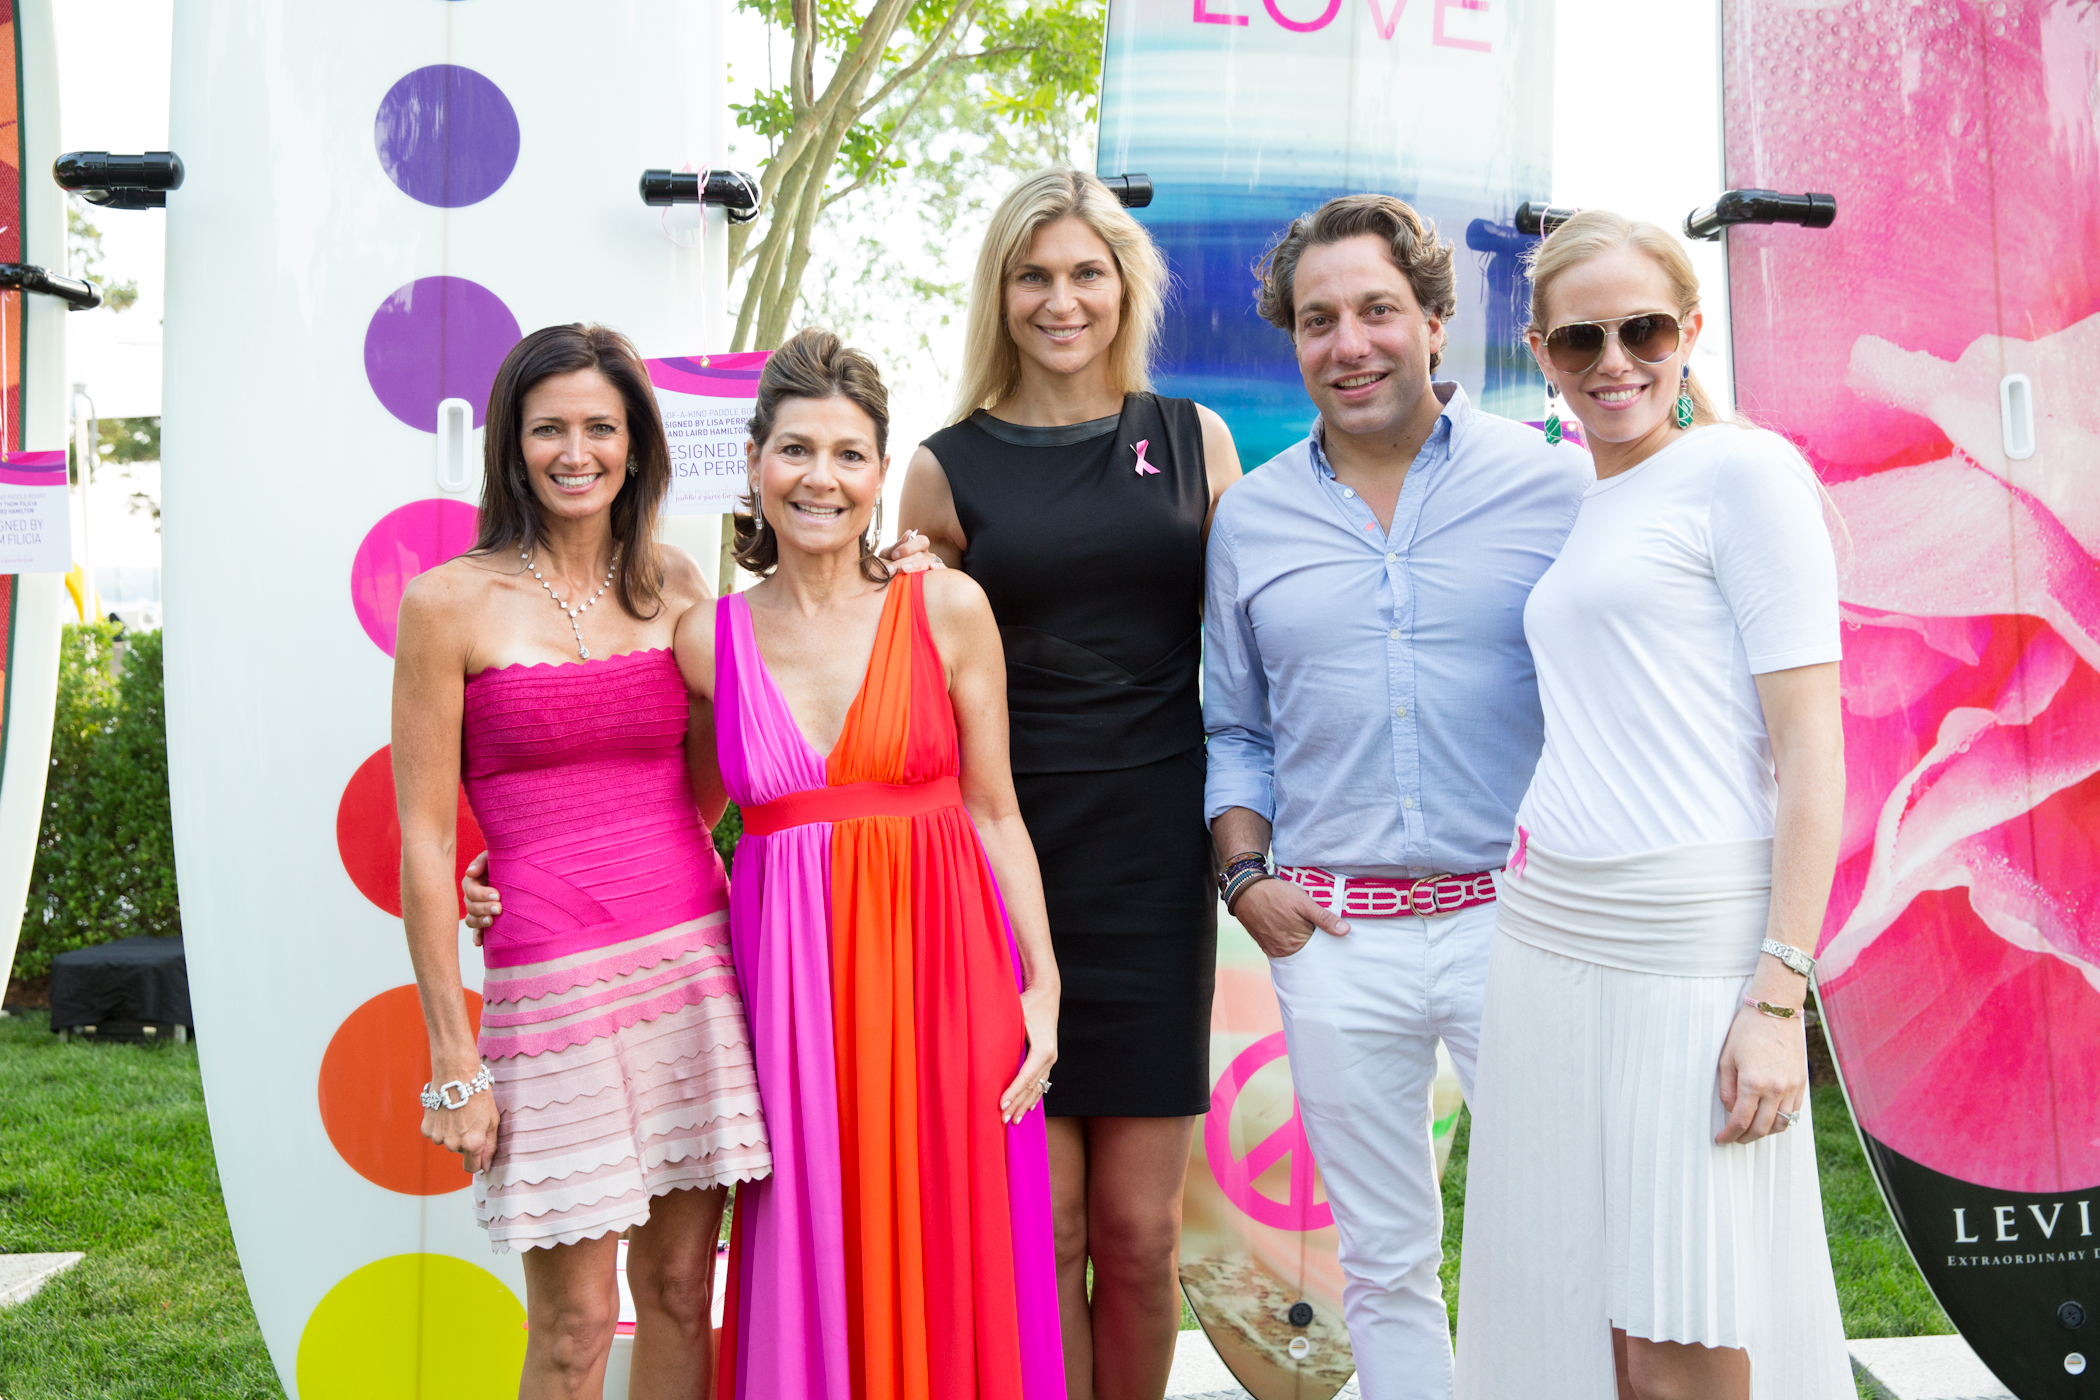 New kdhamptons party diary lisa amp richard perry party for pink